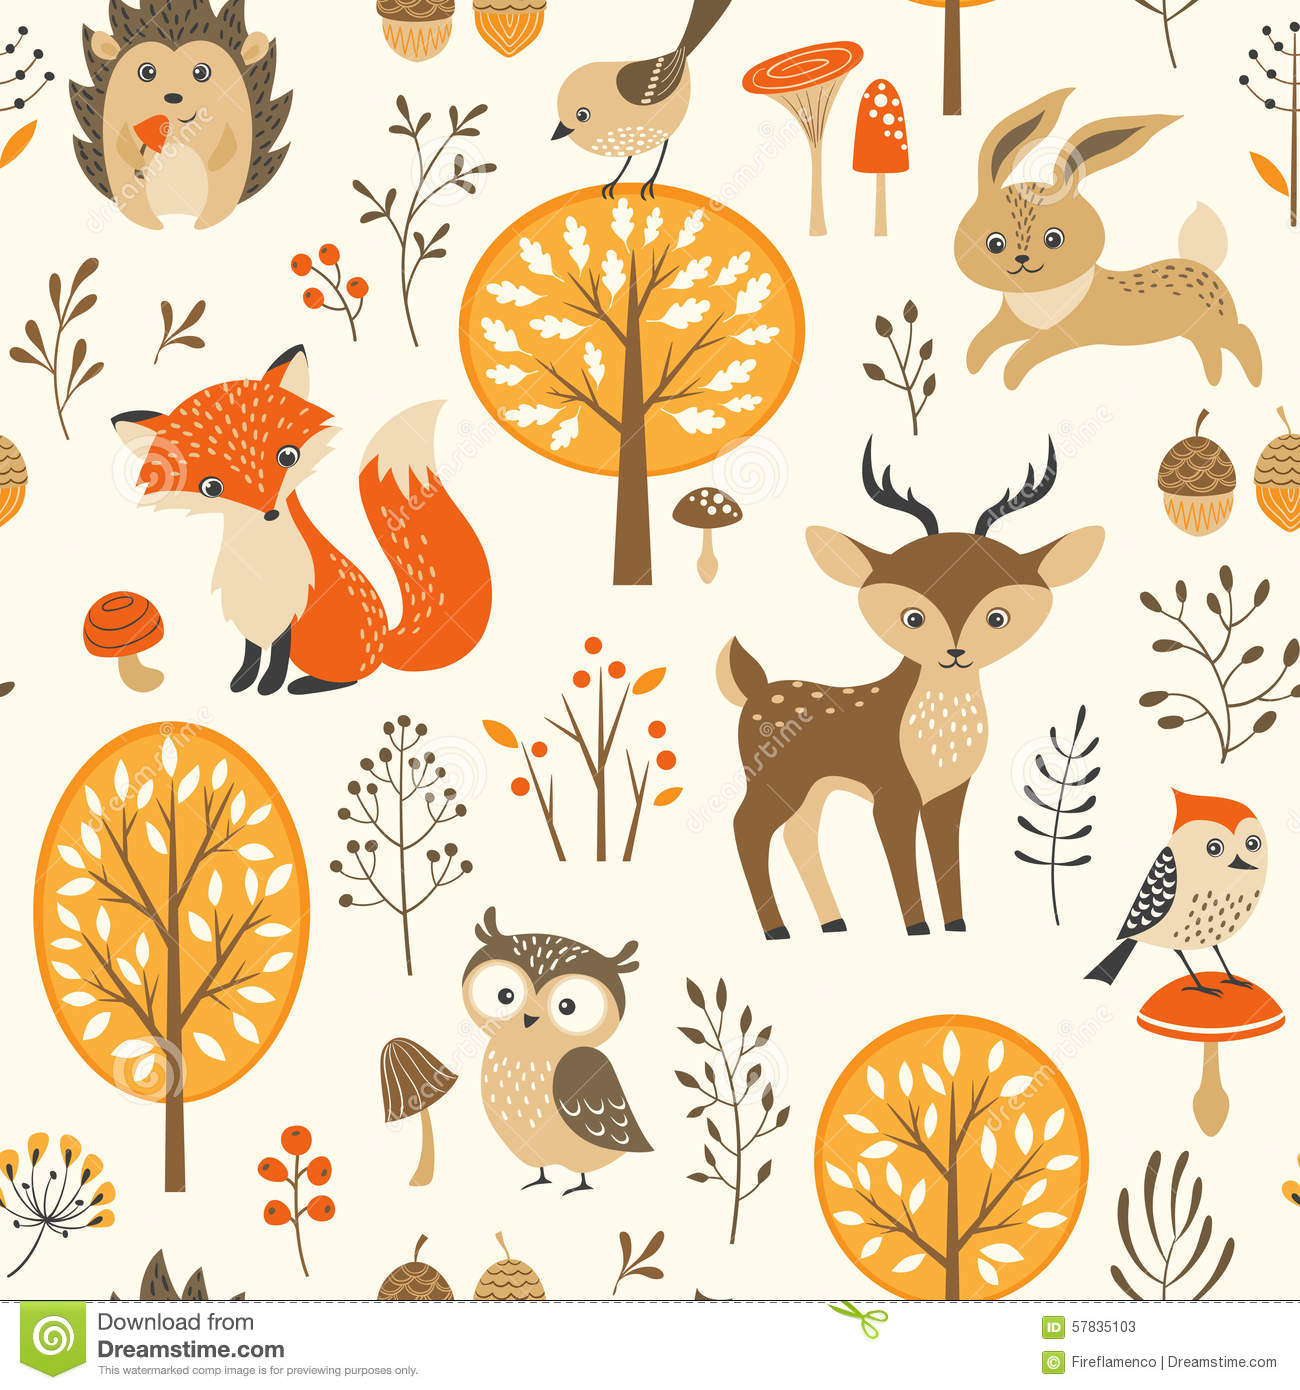 Fall Pumpkin Iphone Wallpaper Cute Autumn Forest Pattern Stock Vector Image 57835103